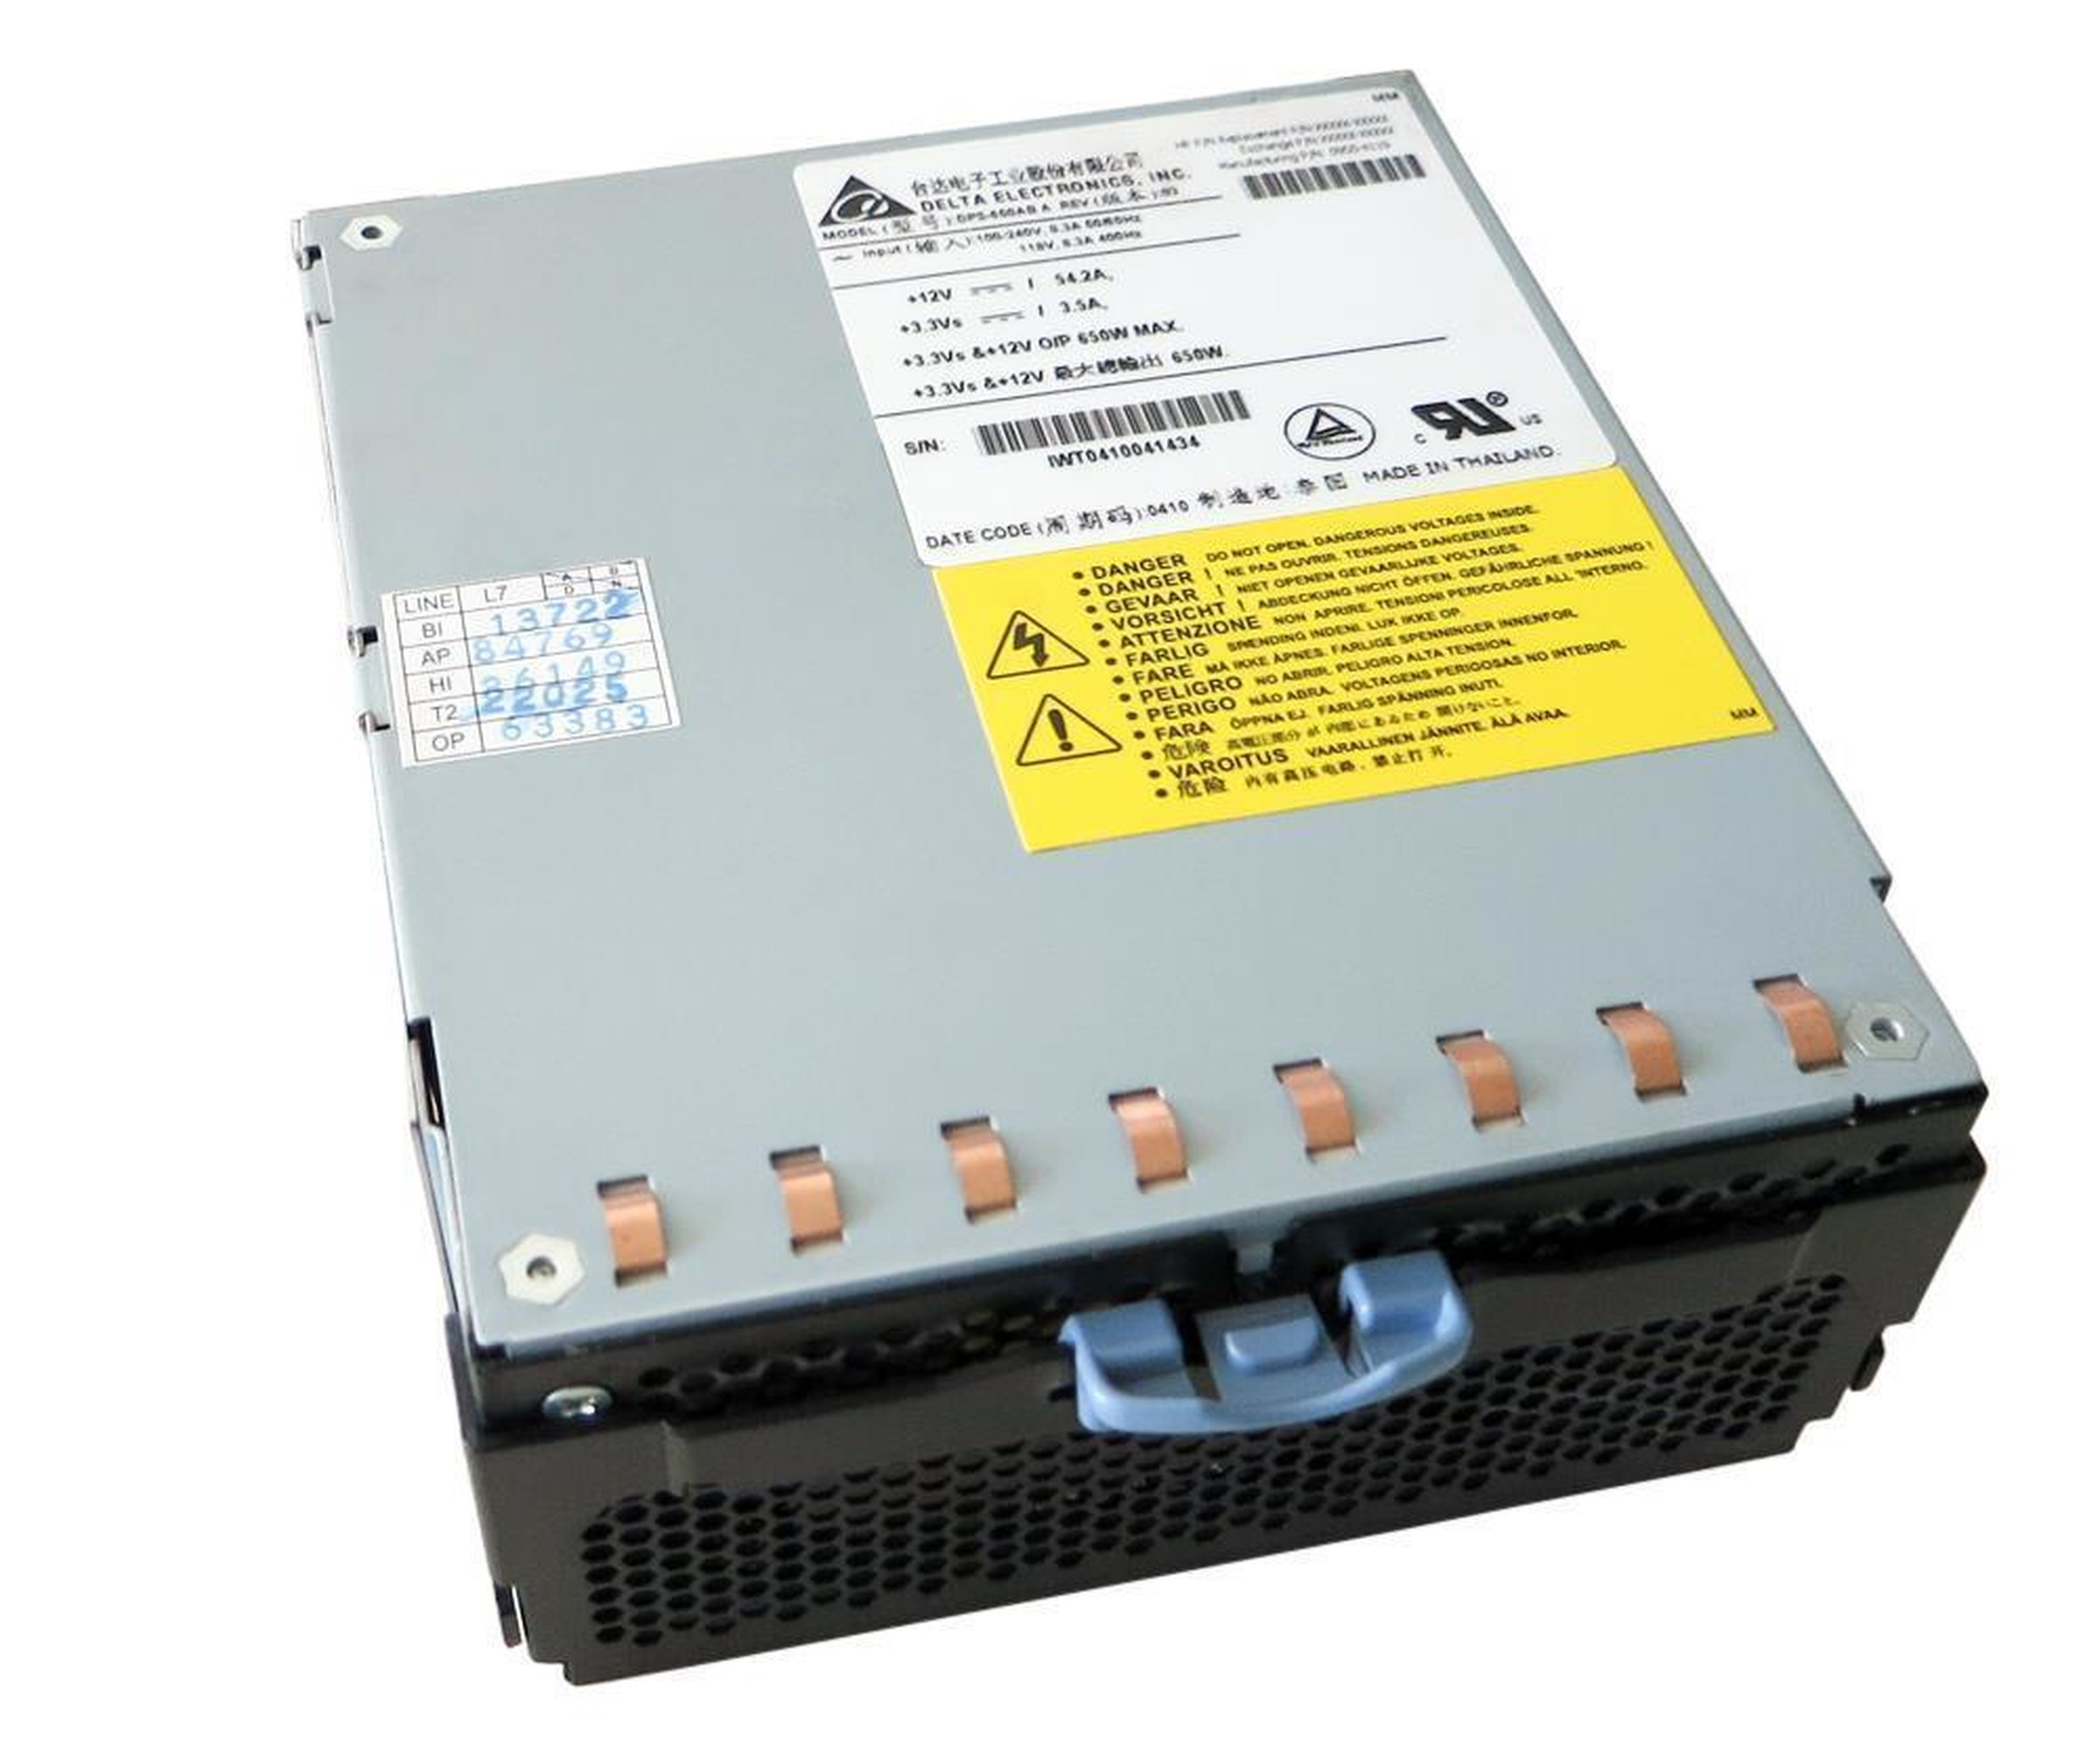 Delta - Power Supply Module - Netzteil - DPS-650AB A - 650 Watt - 0950-4119 - A6874A